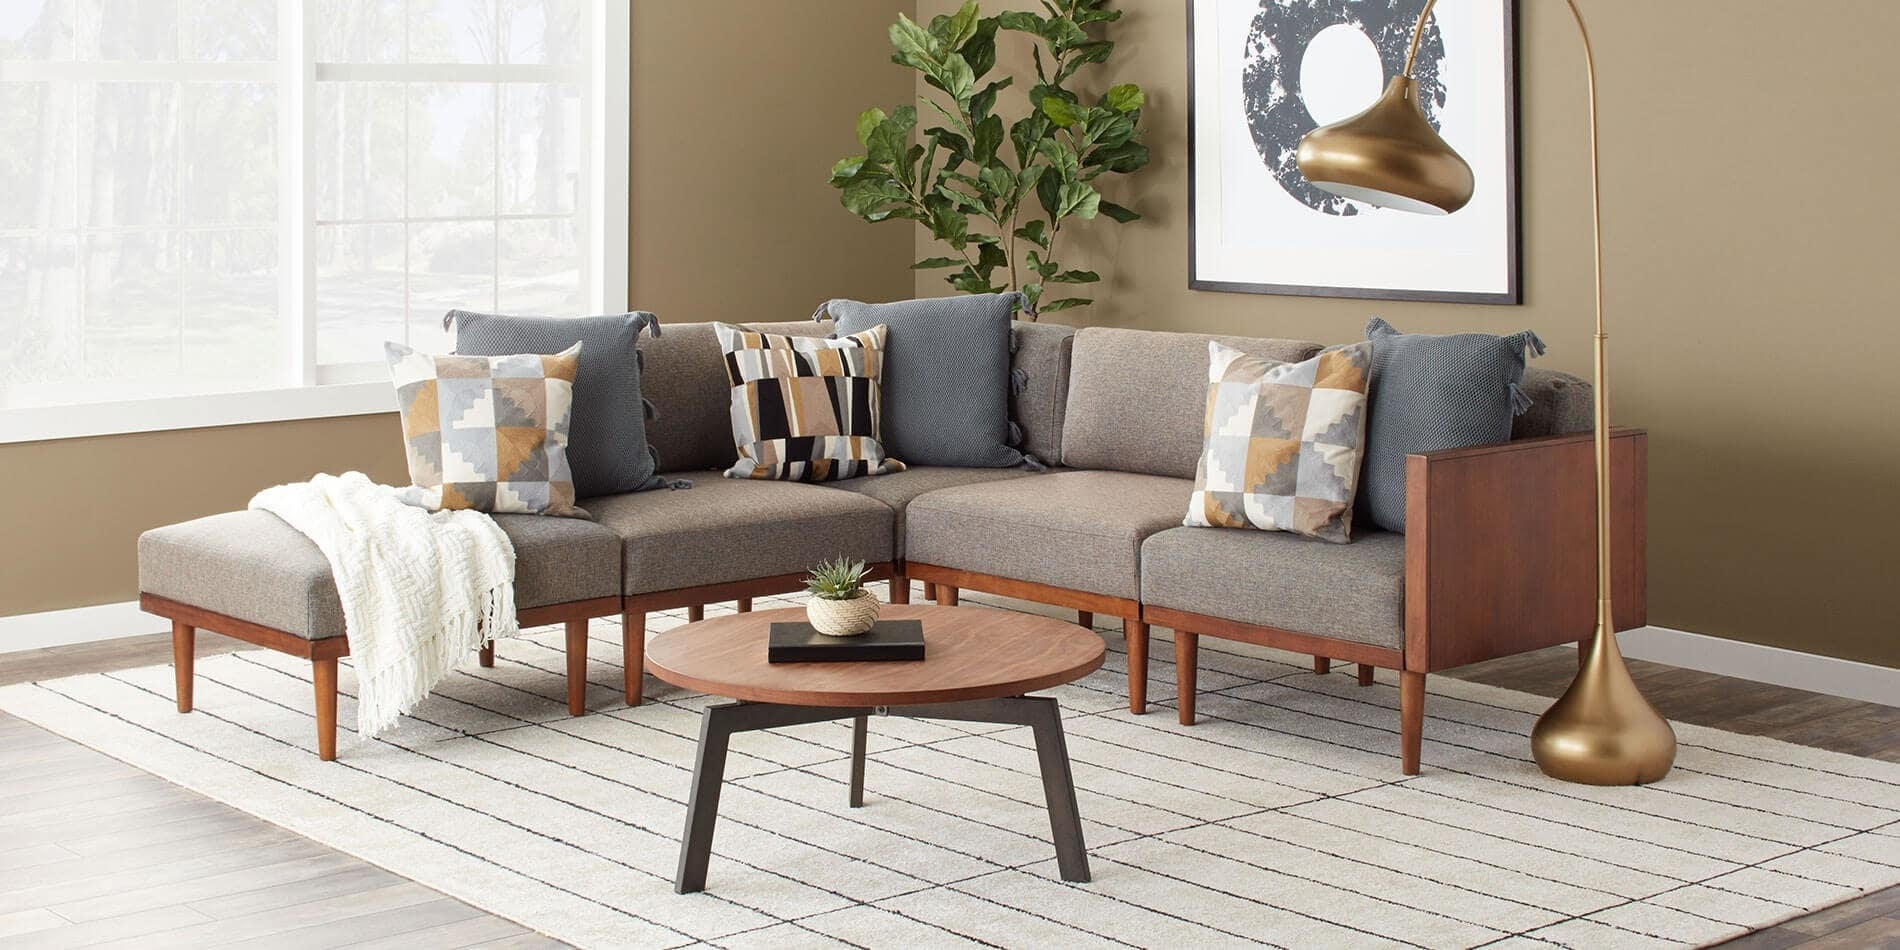 Kitchen : Living Room Cm6156Gy Sect Sectional Best Couchesk For Sets With Nh Sectional Sofas (Image 5 of 10)